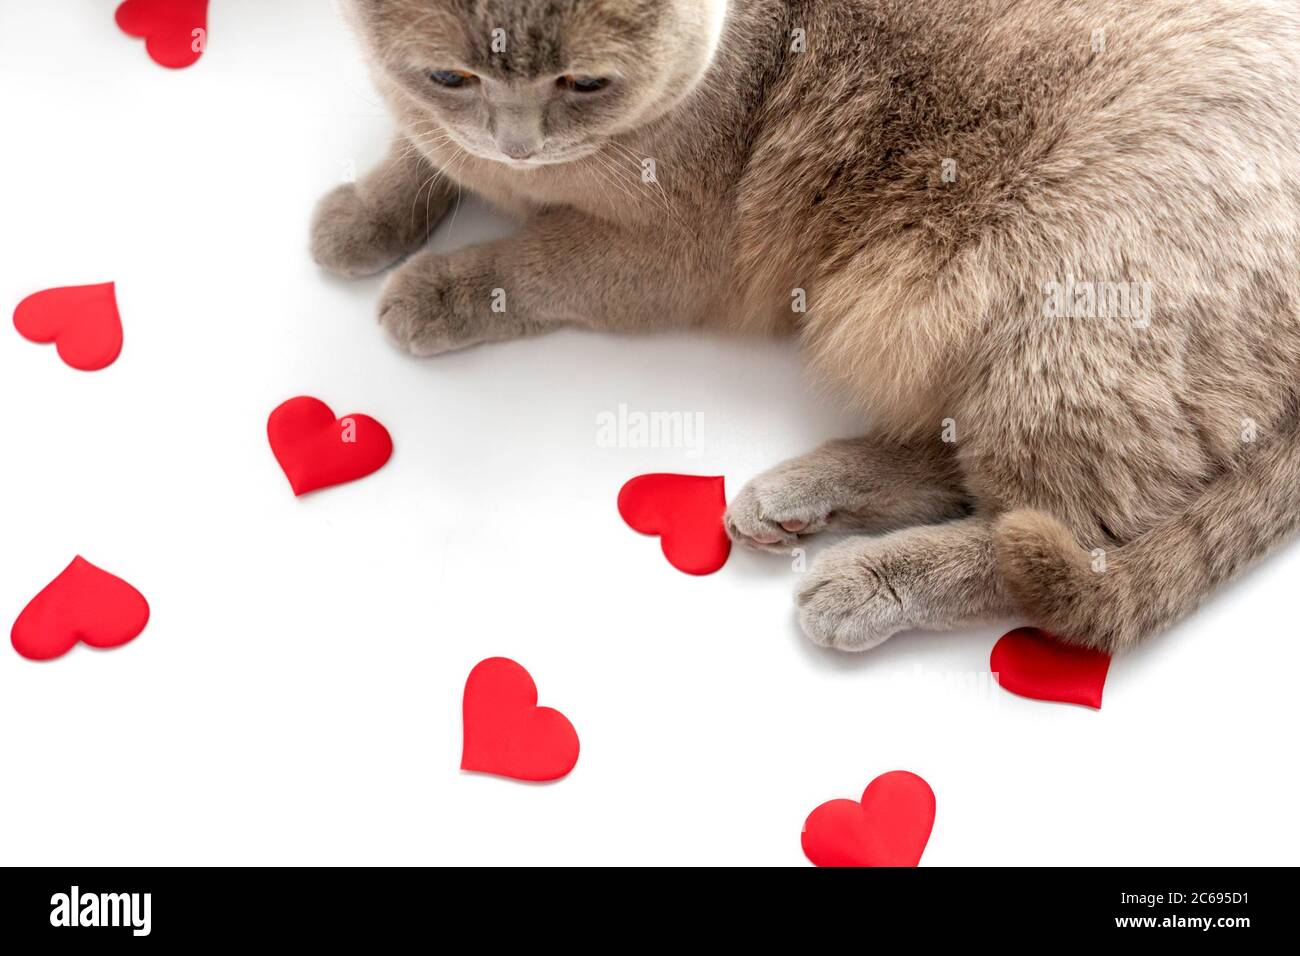 The British lilac cat look at red hearts on light background. Valentines day concept. Stock Photo